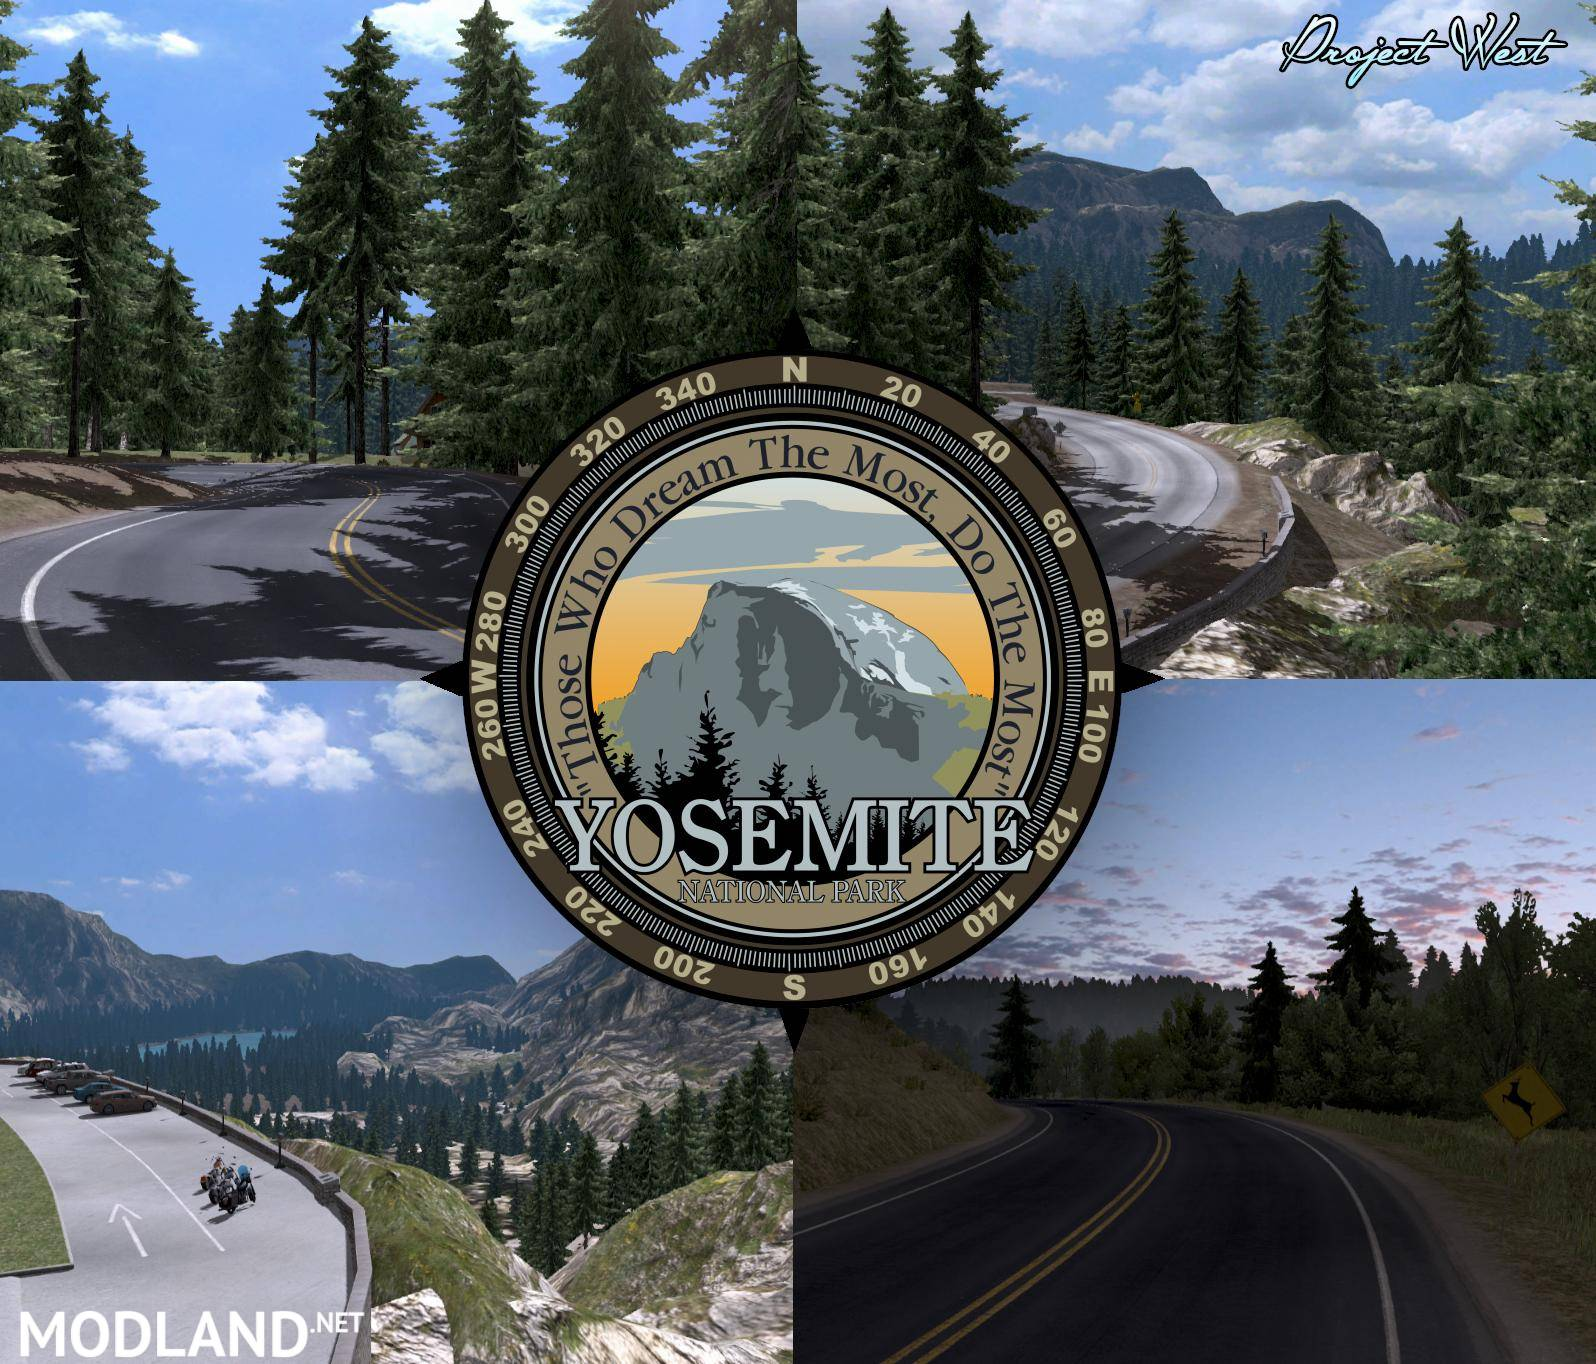 Project West Map v132 16x 4